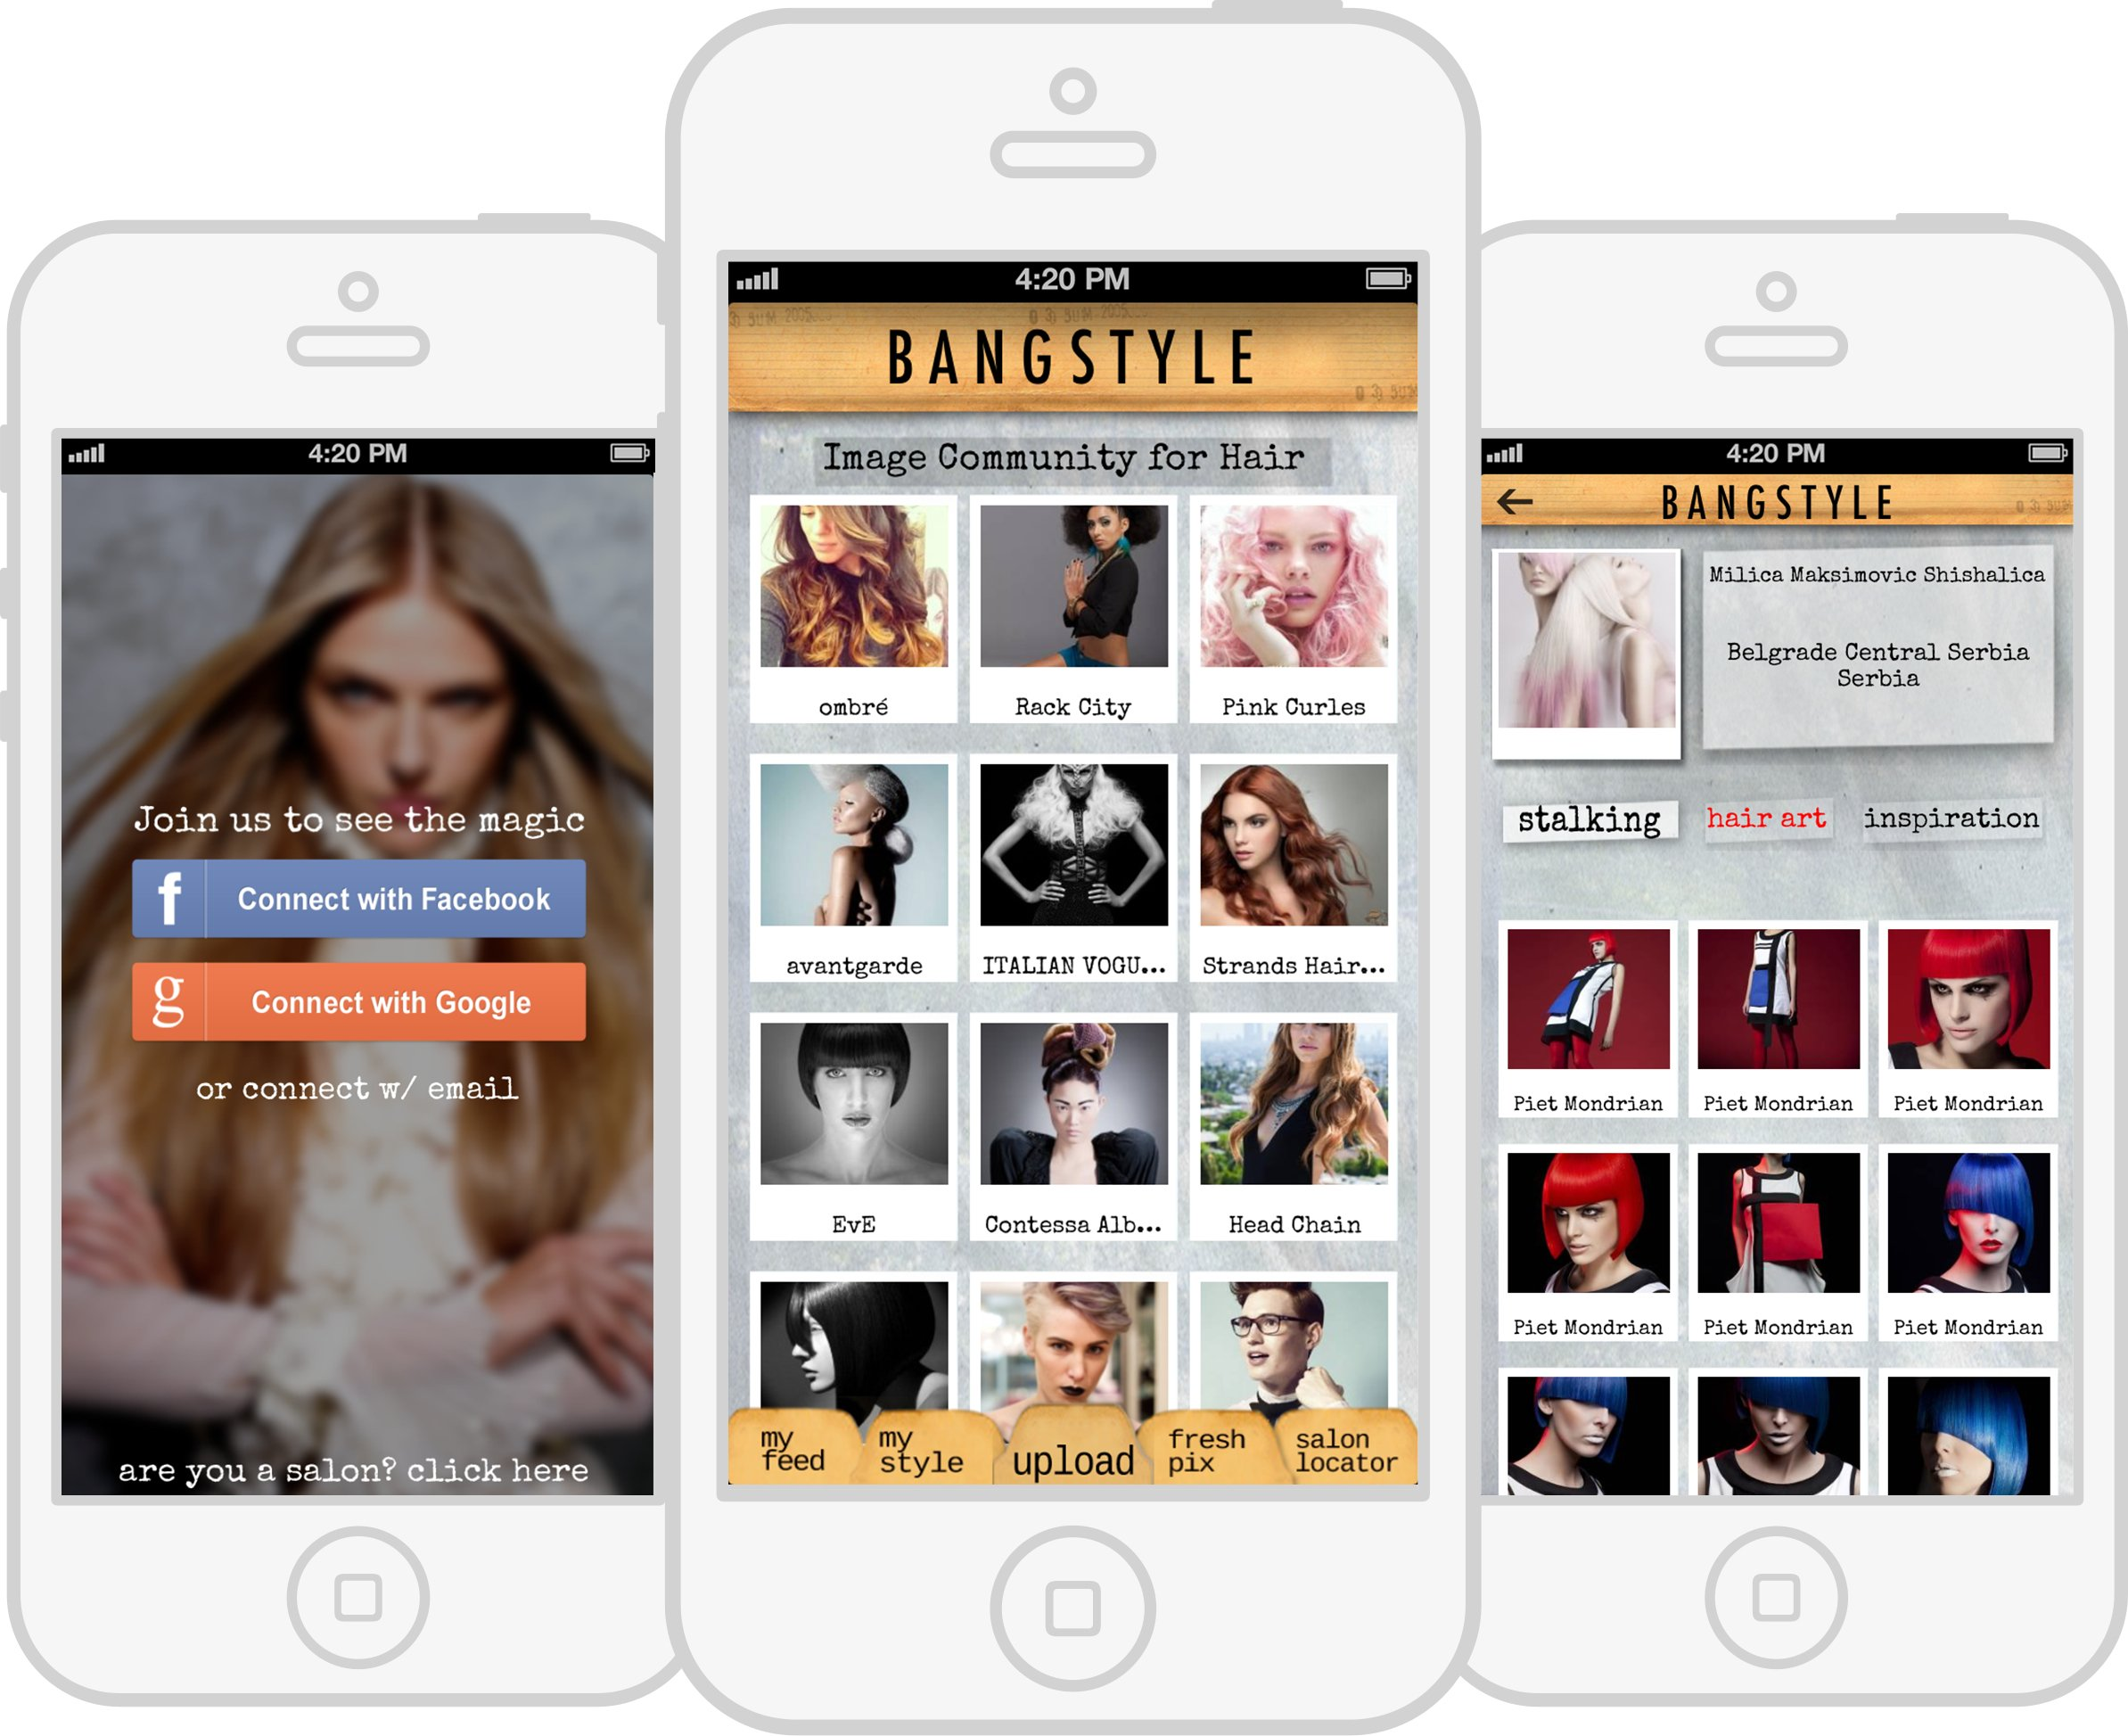 Bangstyle Launches Updated Mobile App to Share Hair